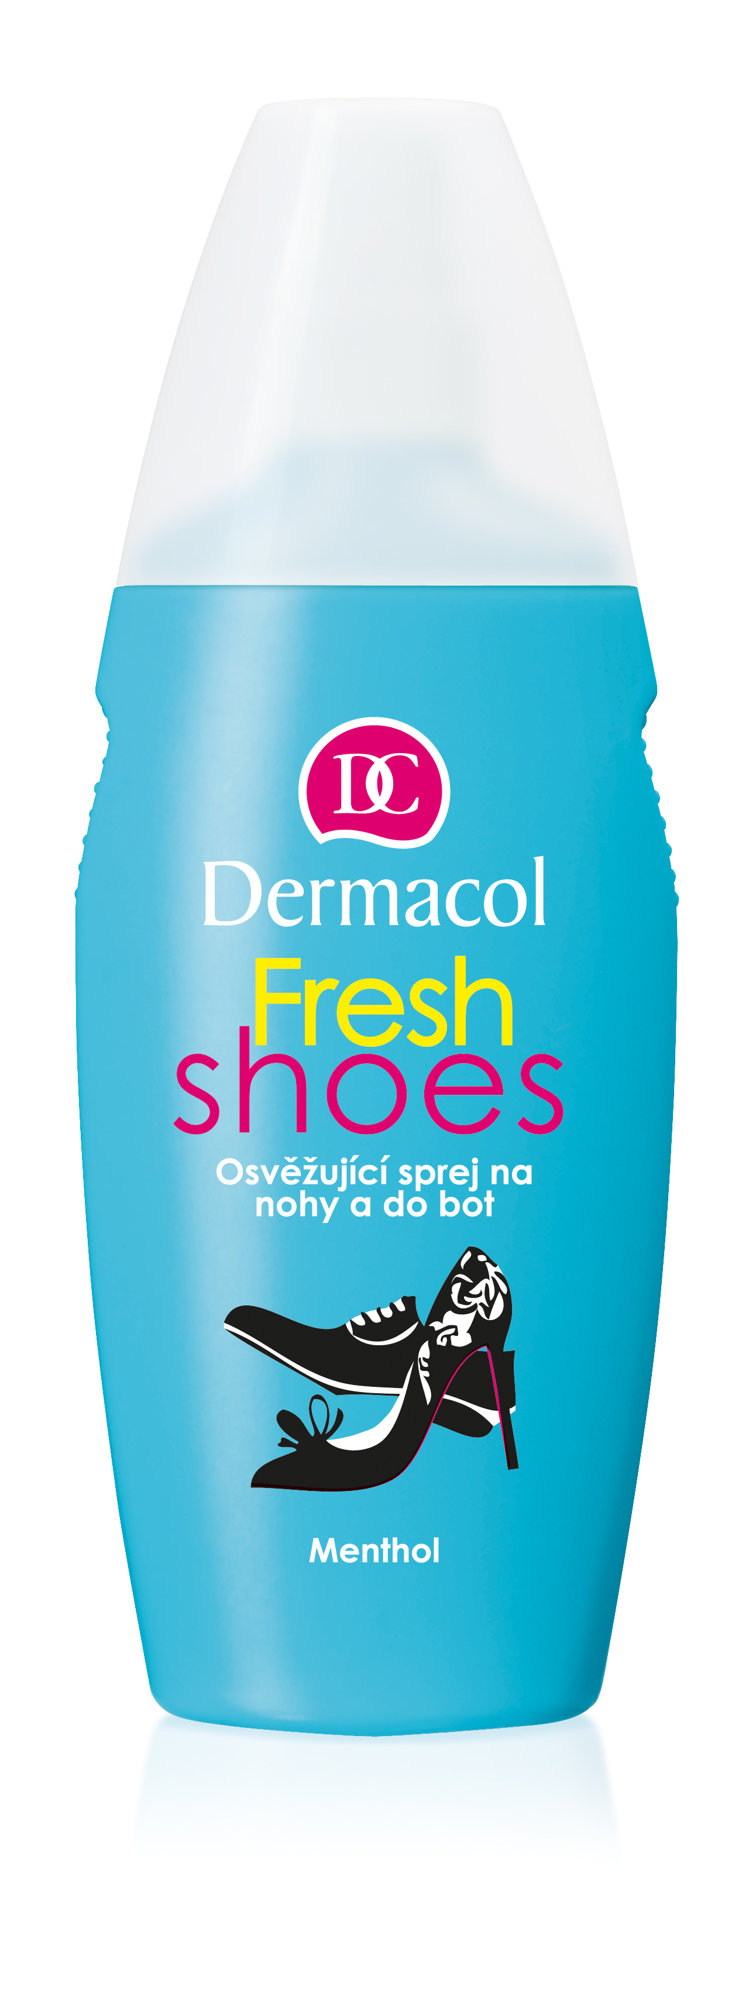 Dermacol Fresh Shoes, Sprej na nohy 130ml